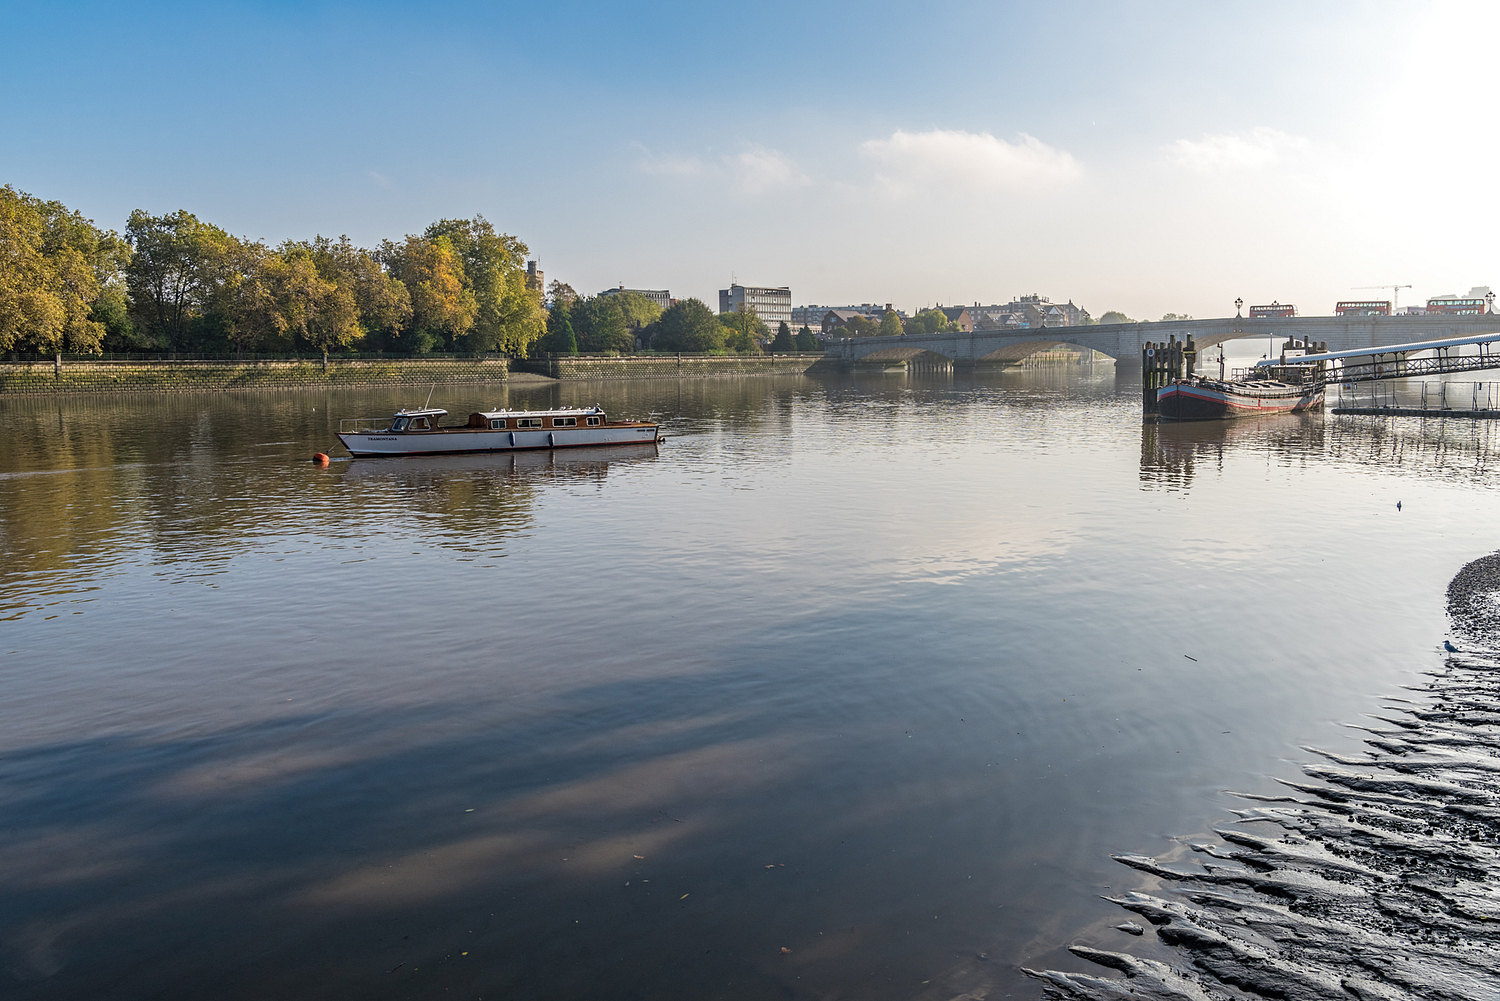 The Thames at Fulham, London